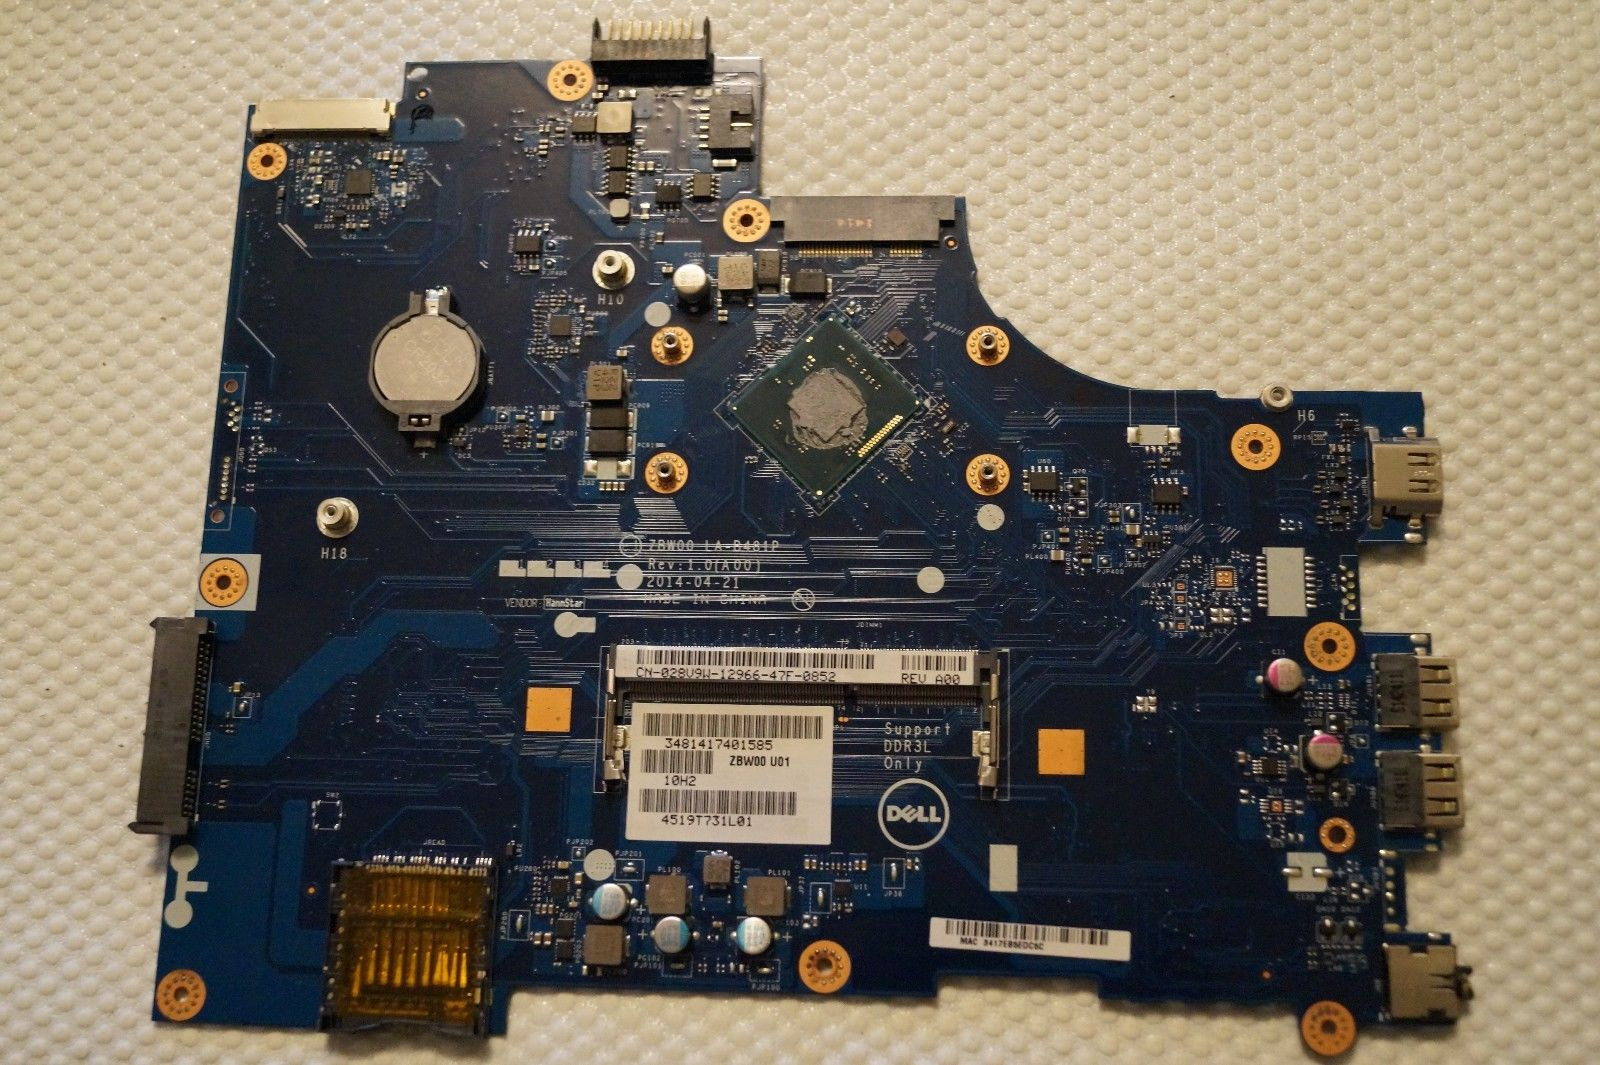 CN-0Y3PXH Y3PXH 0Y3PXH laptop motherboard Dell Inspiron 15-3531